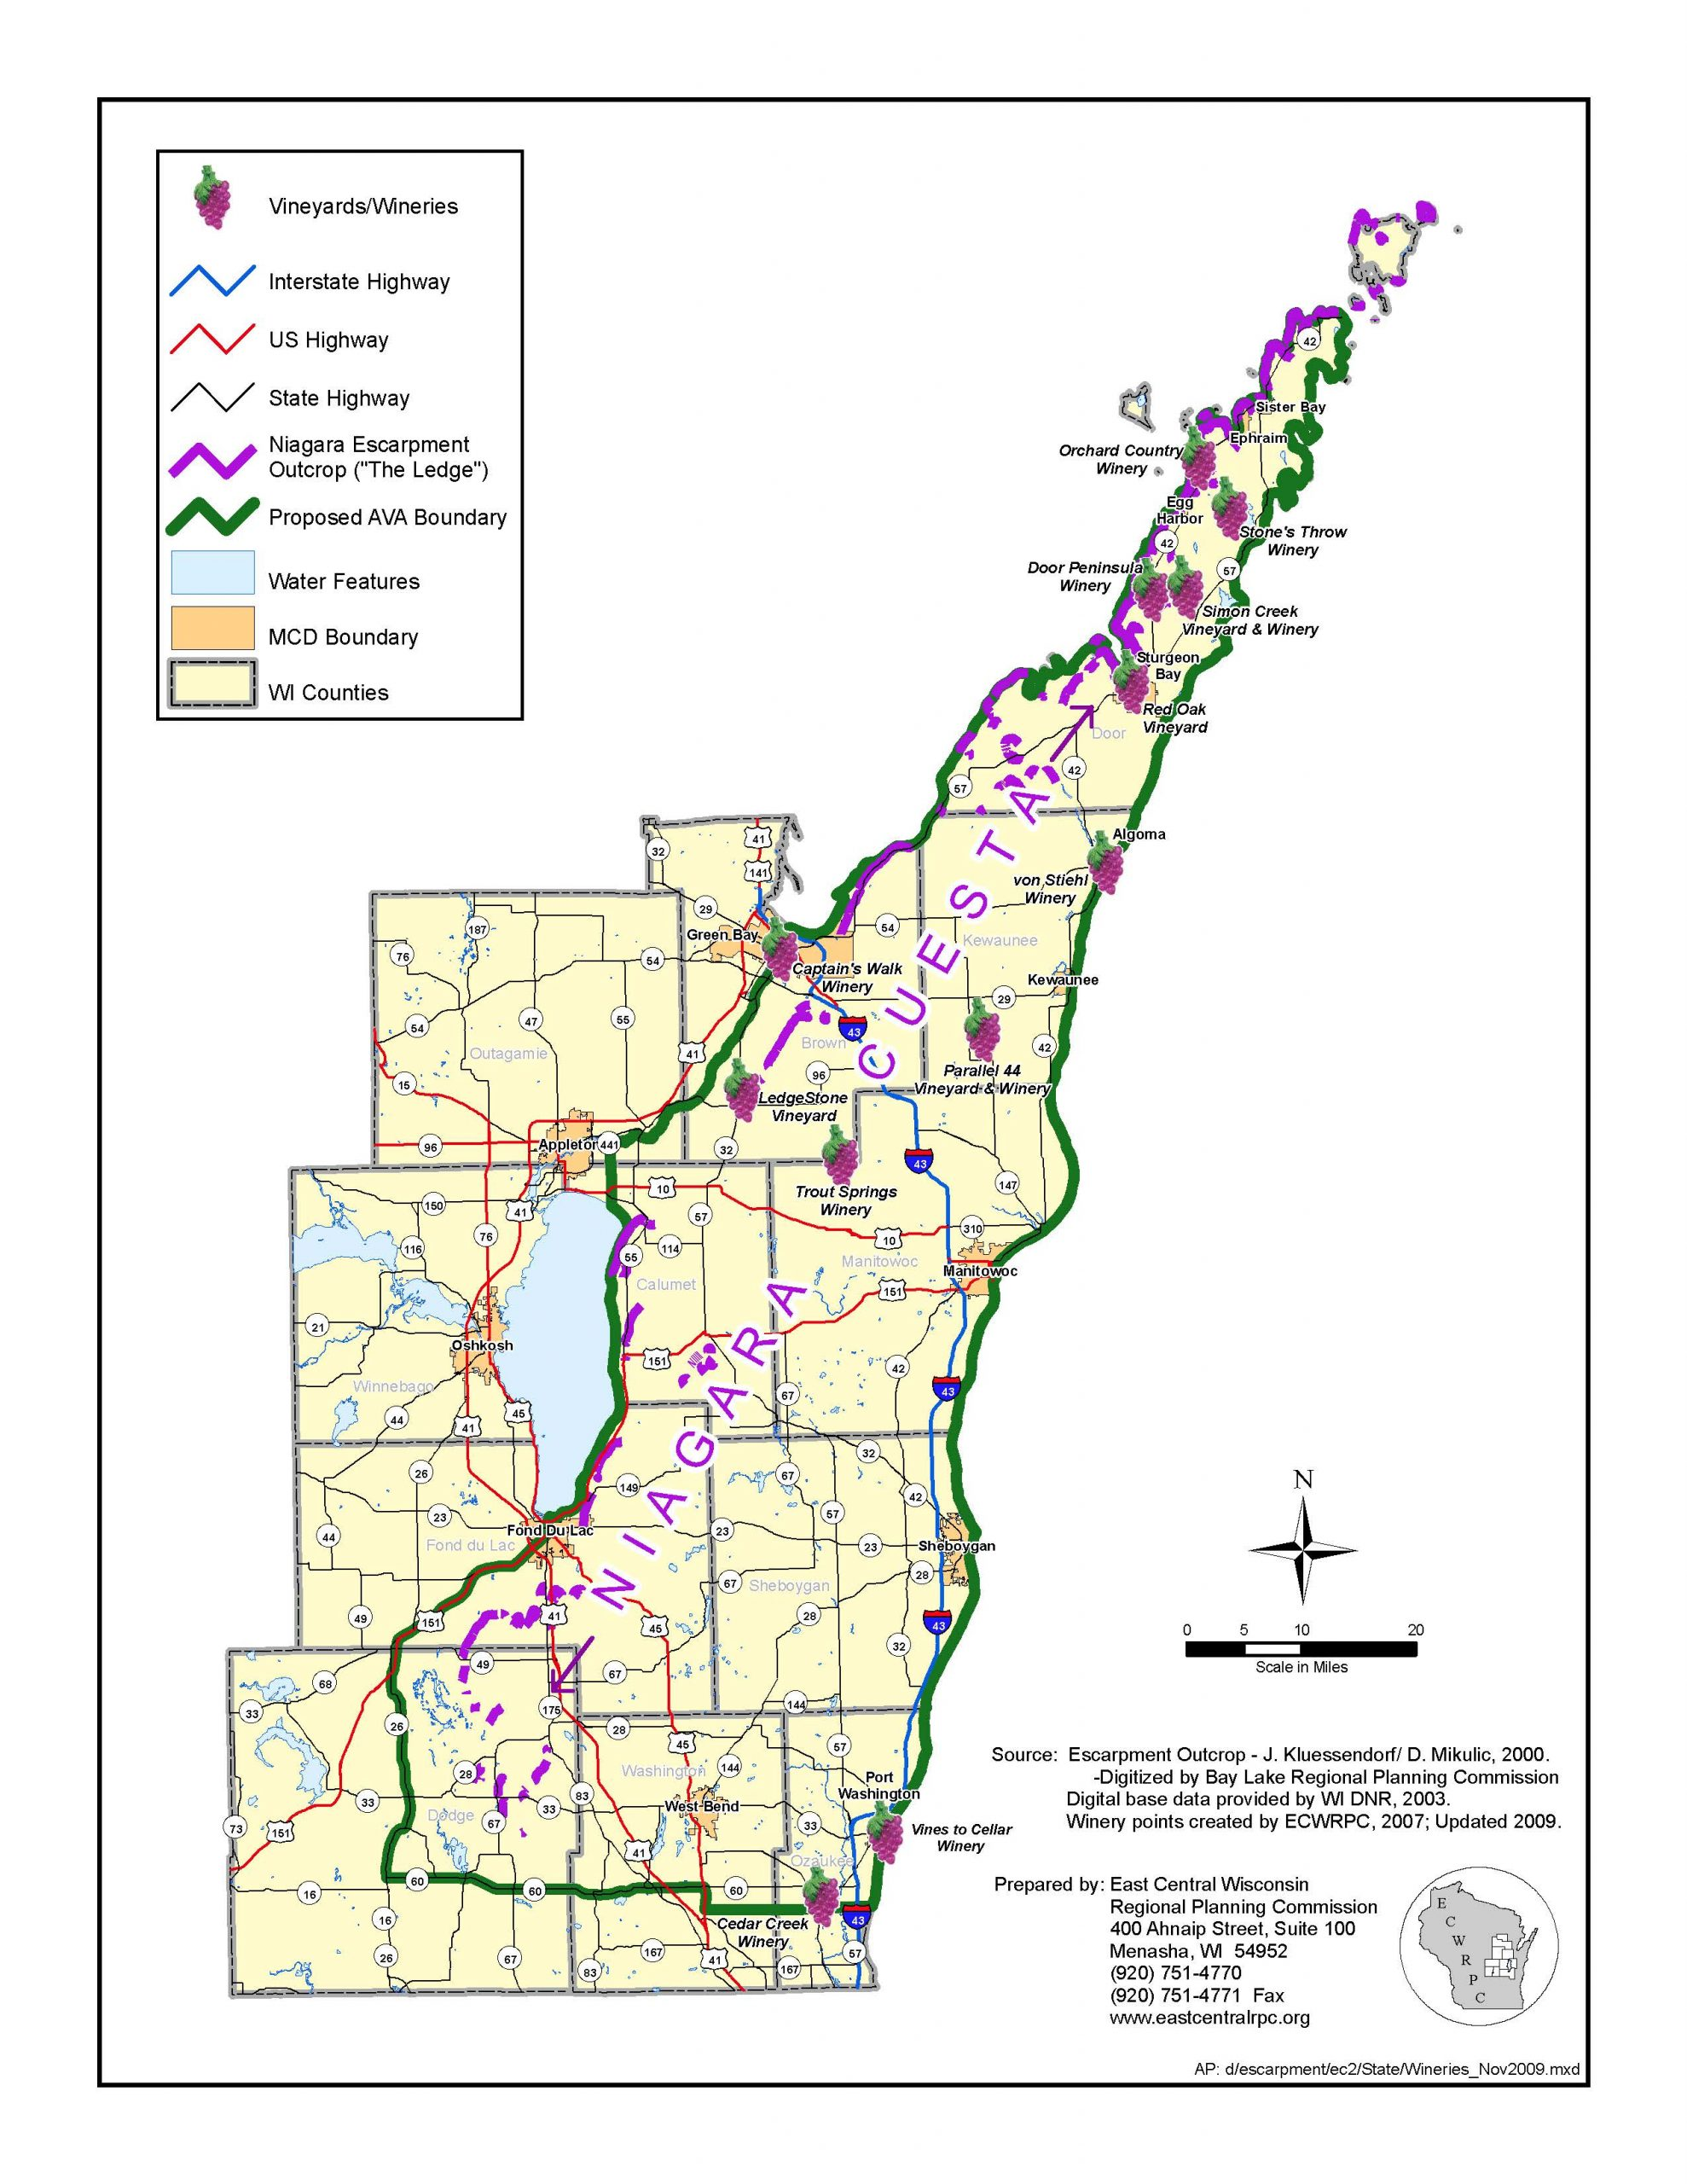 Niagara Escarpment Wisconsin Map.Wisconsin Ledge Ava Set For Ttb Approval Midwest Wine Press